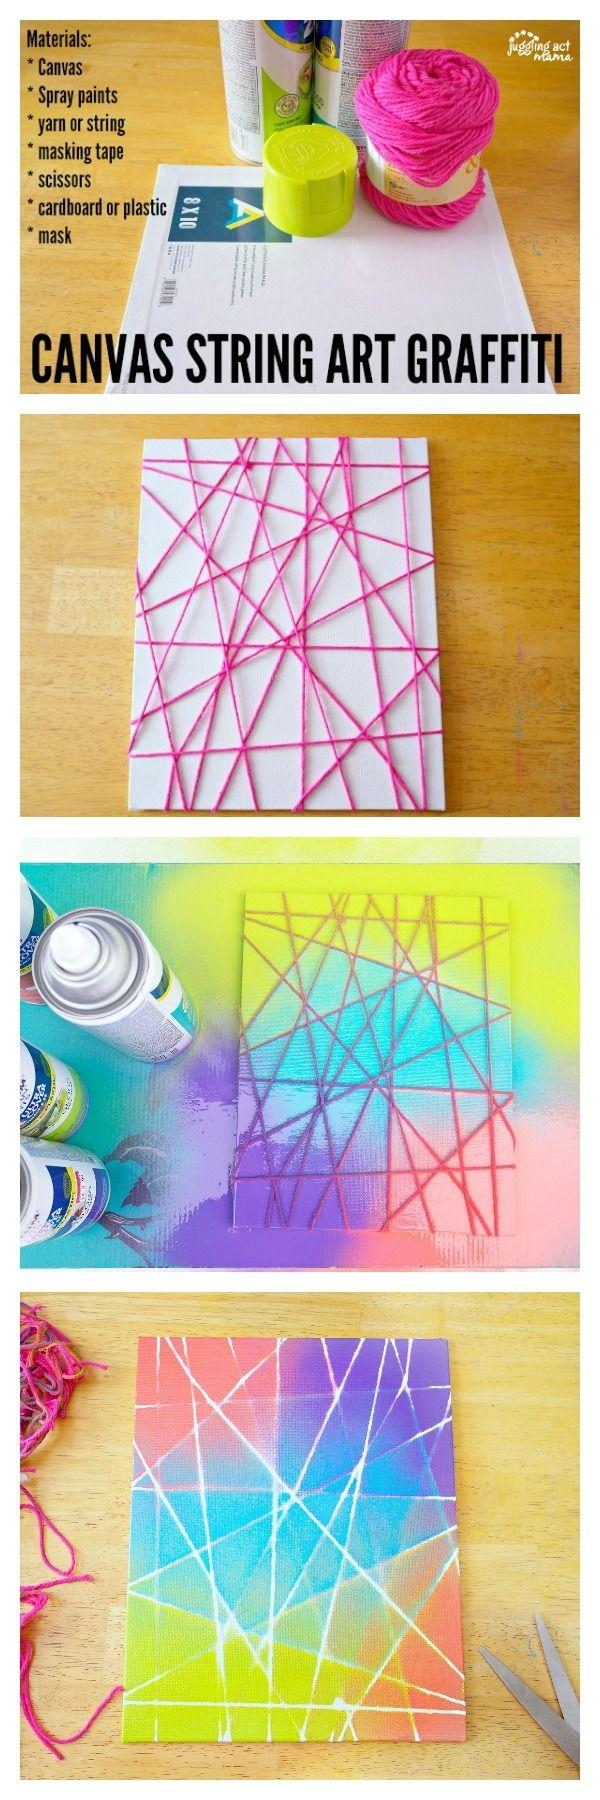 Best 25+ Canvas Crafts Ideas Only On Pinterest | Drawing Room With Diy Pinterest Canvas Art (Image 10 of 20)